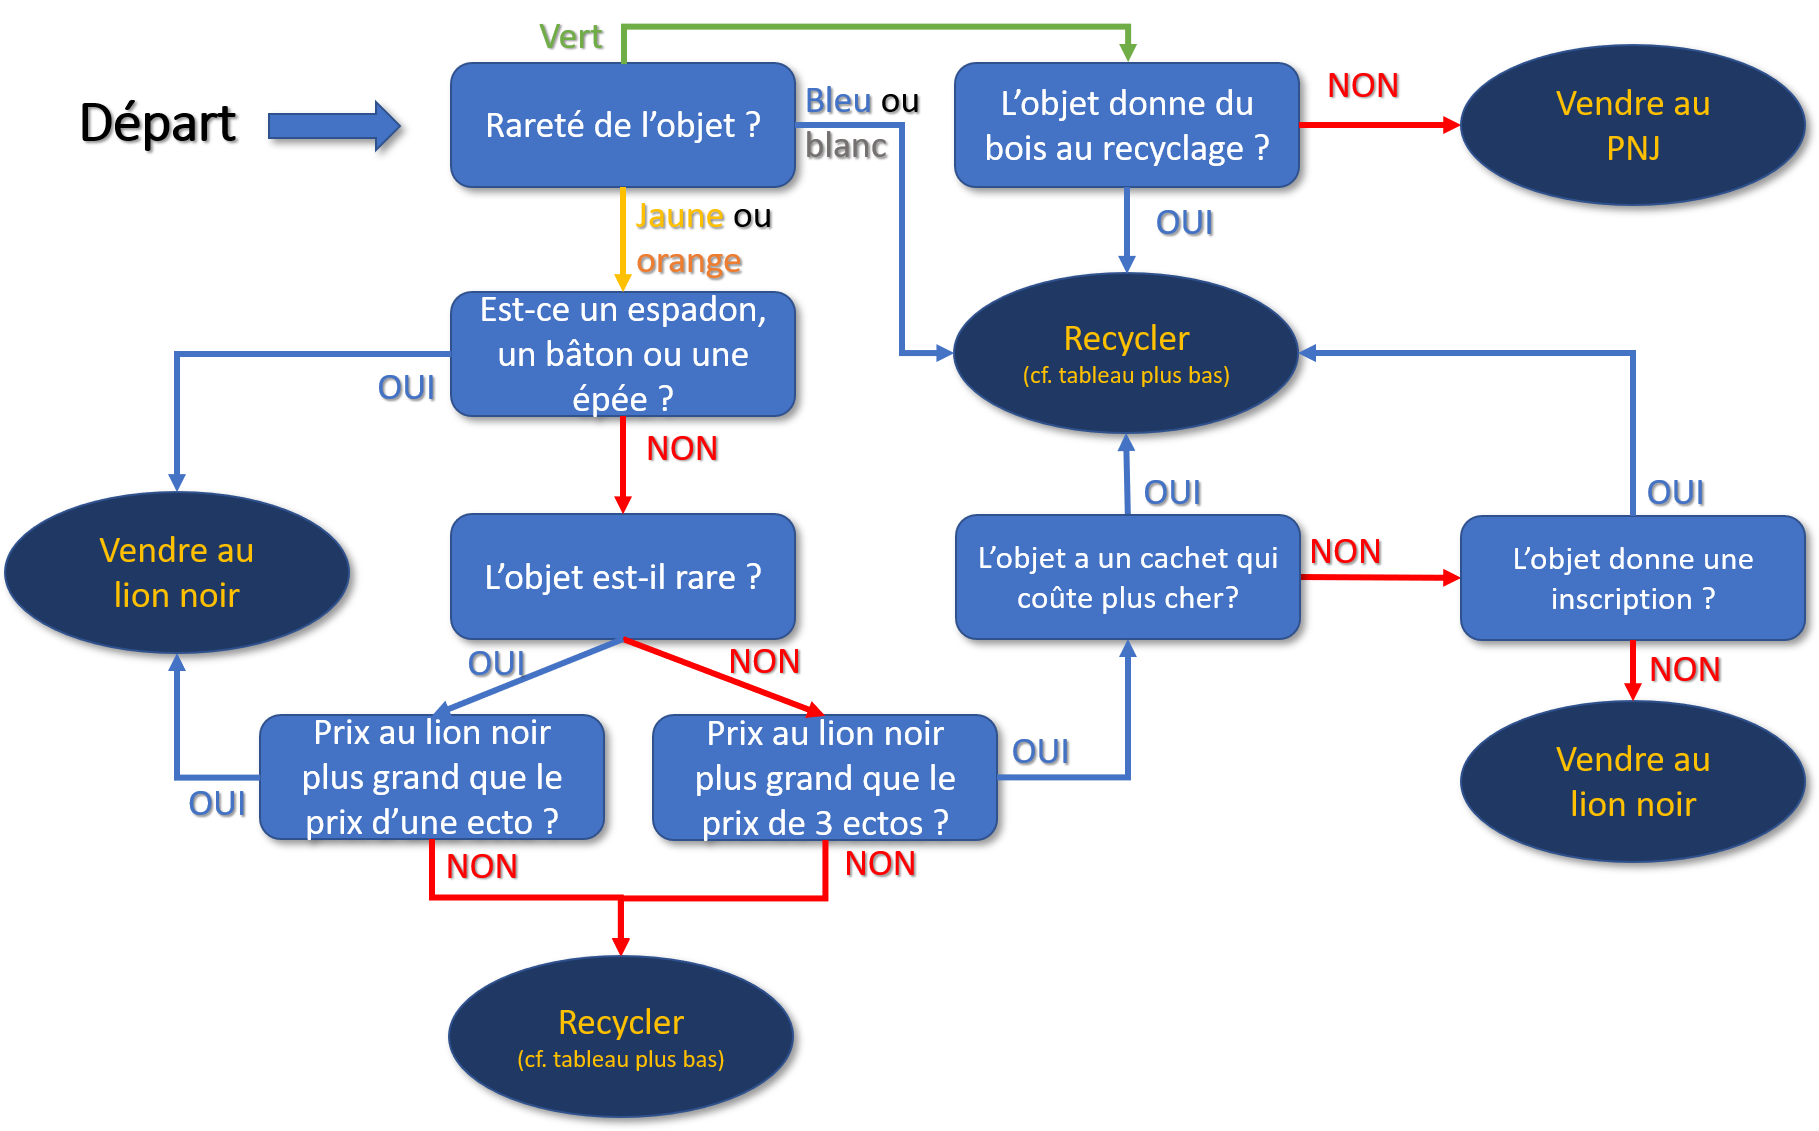 Guide recyclage v3